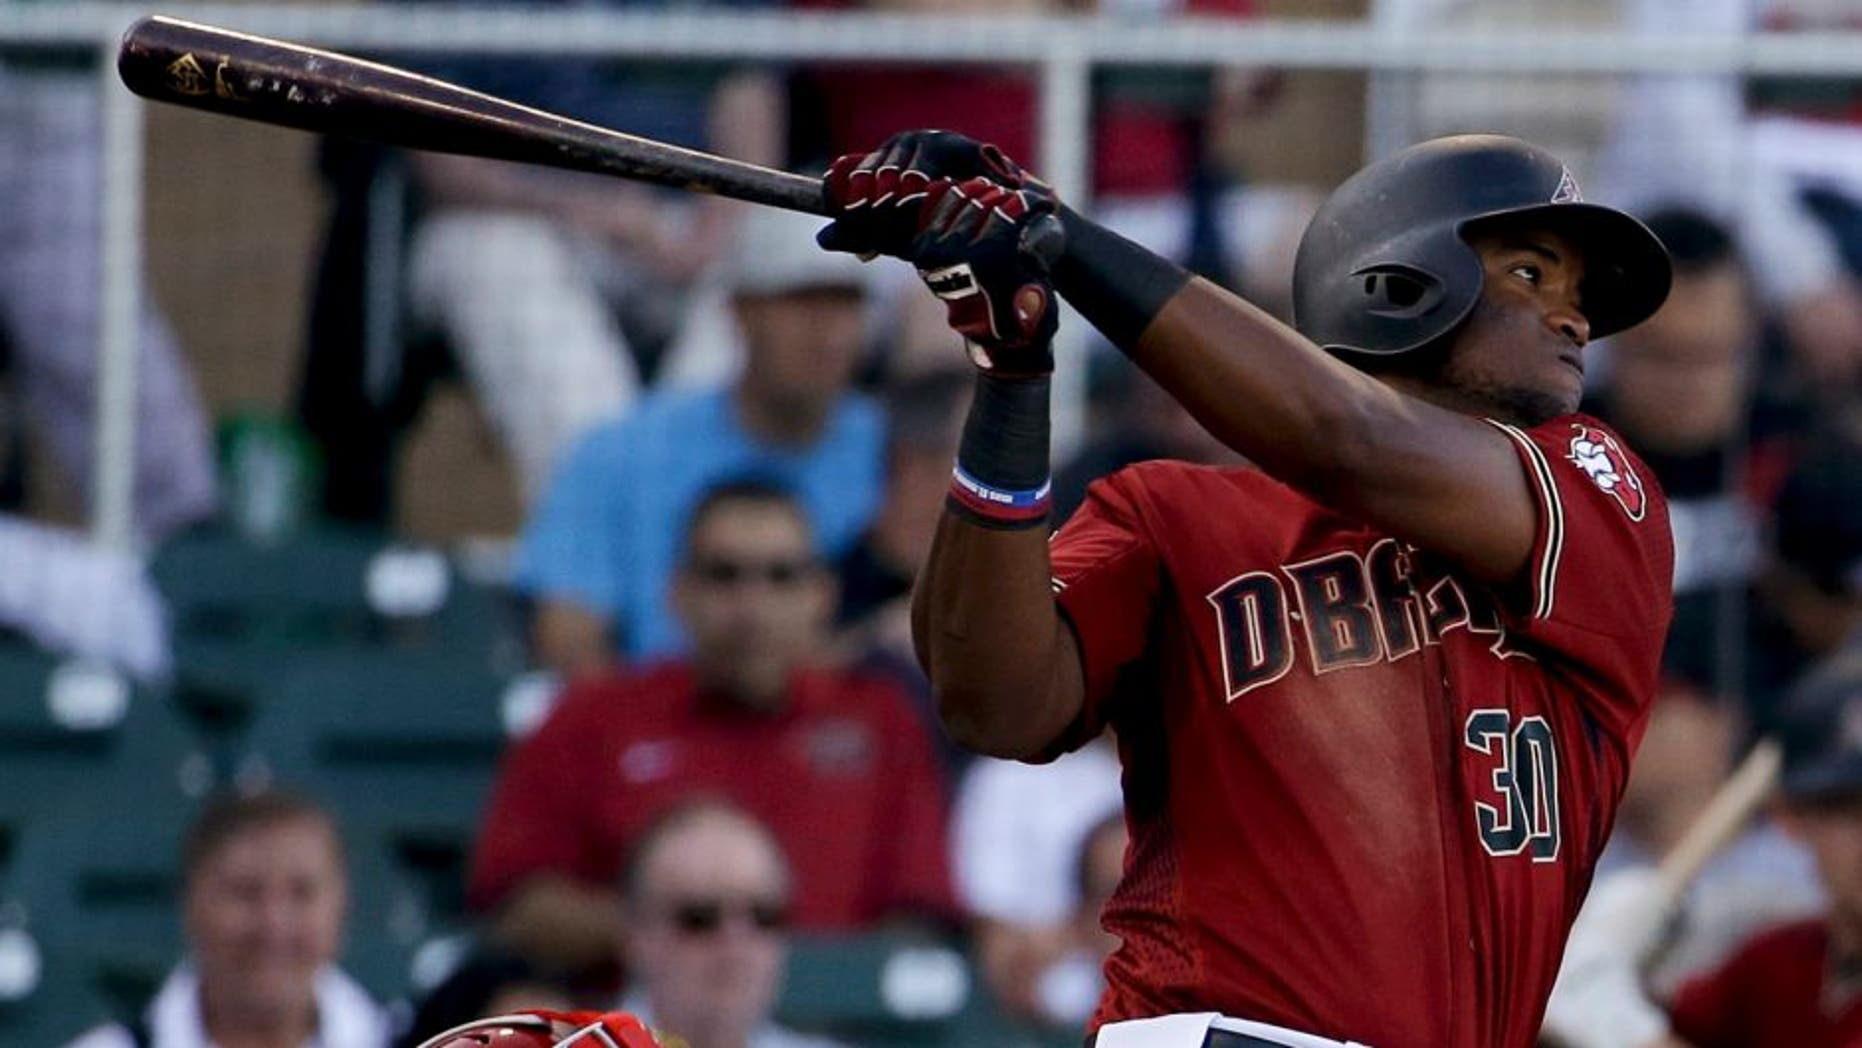 Arizona Diamondbacks' Socrates Brito watches his RBI double against the Los Angeles Angels during third inning of a spring baseball game in Scottsdale, Ariz., Tuesday, March 8, 2016. (AP Photo/Chris Carlson)